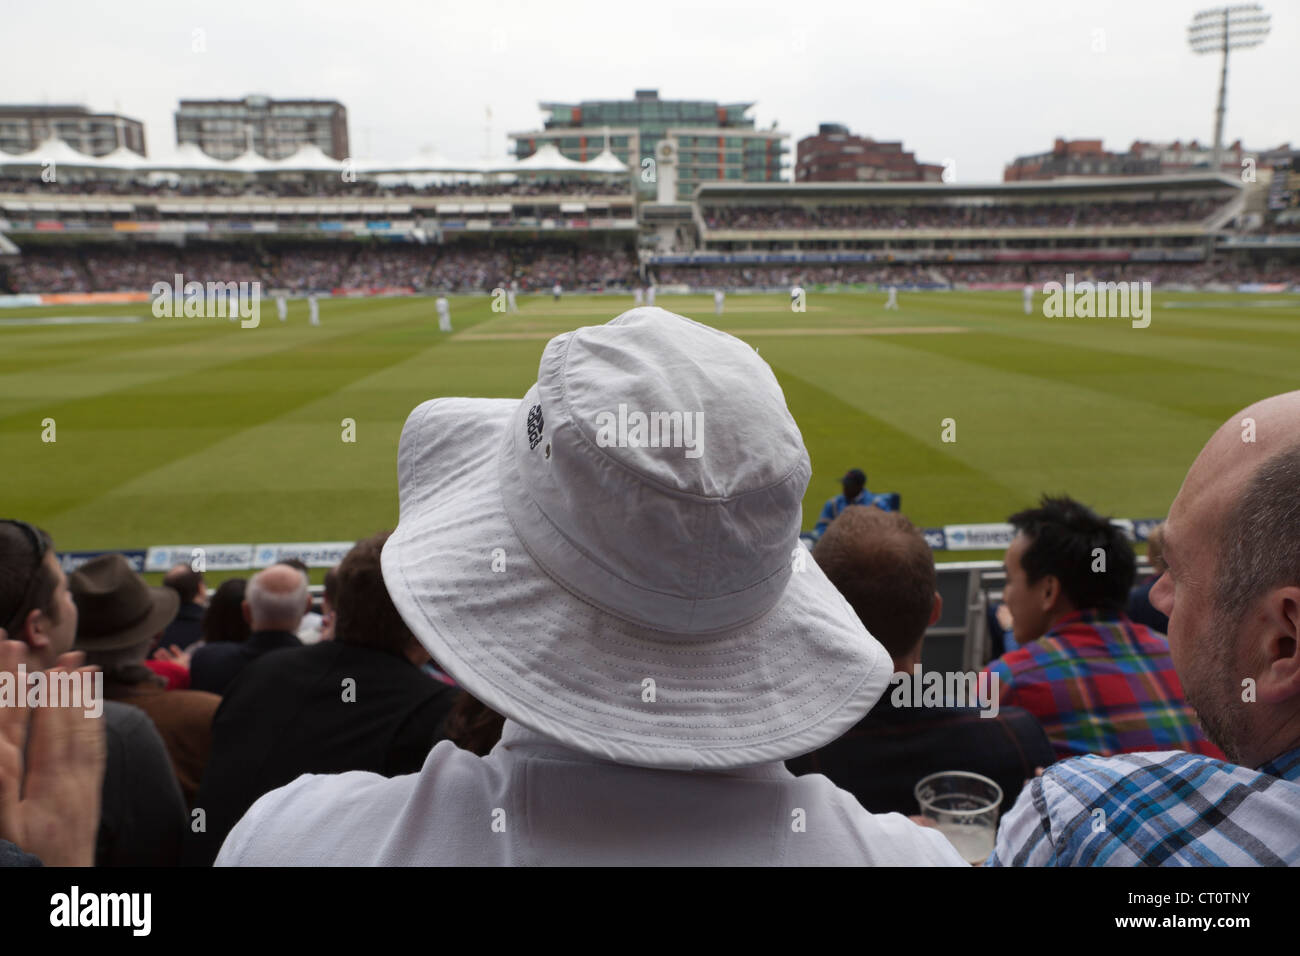 895cc7e7 Man with sun hat watching cricket at Lords Stock Photo: 49191911 - Alamy